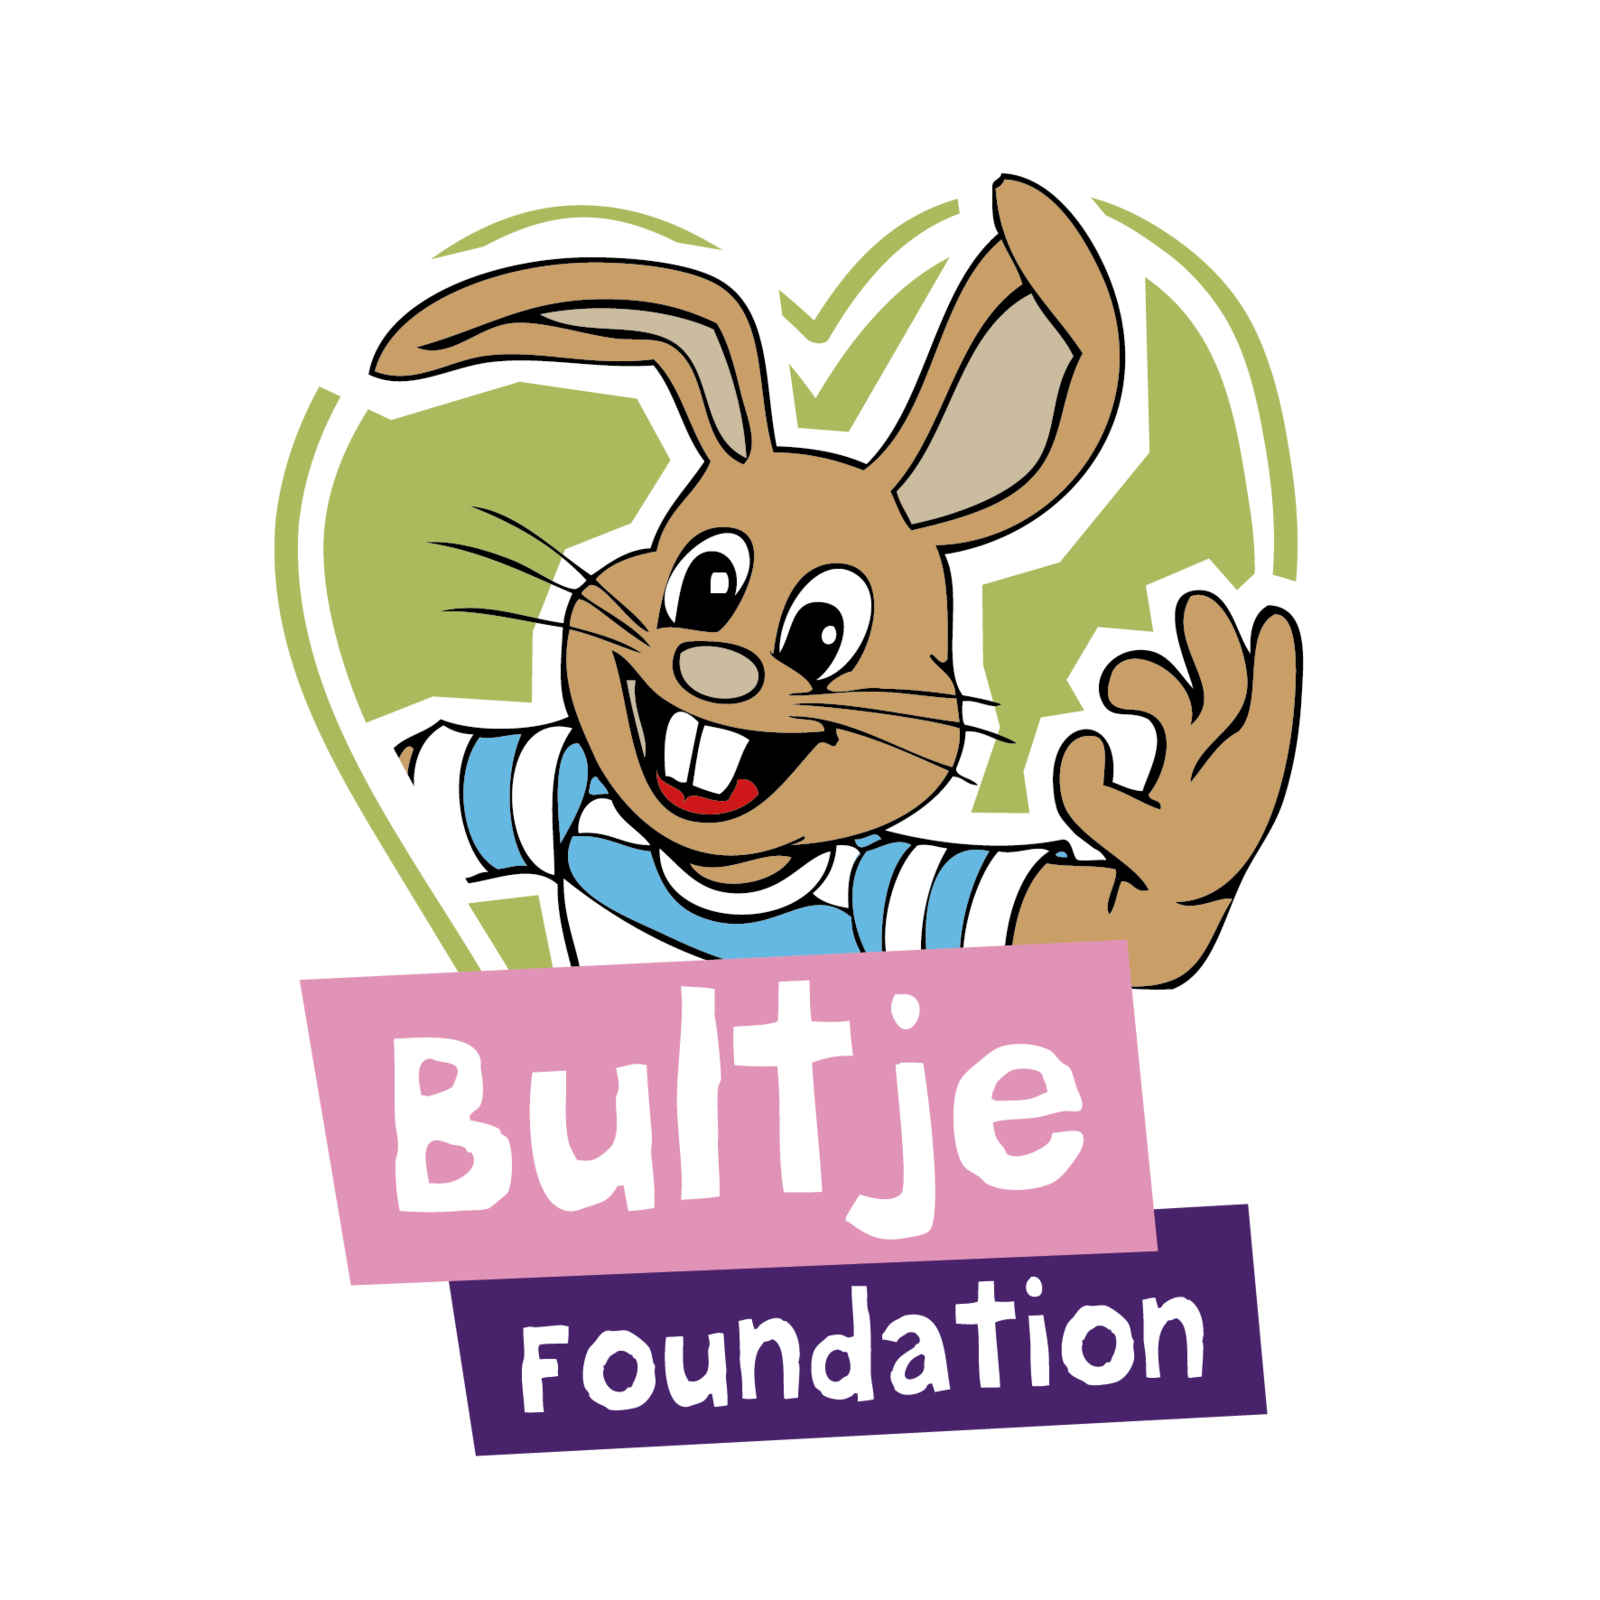 Bultje Foundation